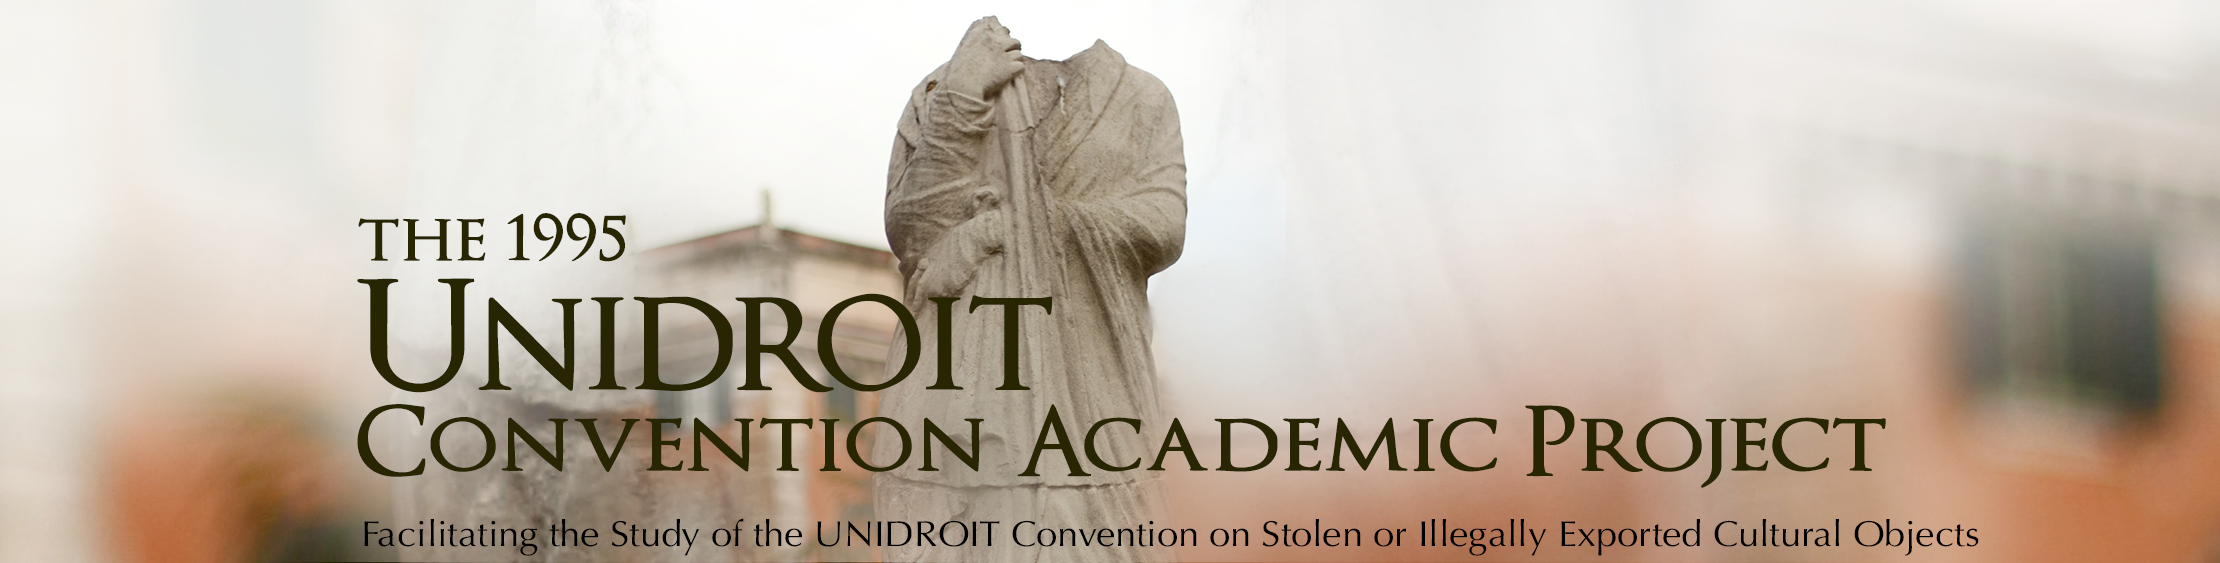 The 1995 UNIDROIT Convention Academic Project